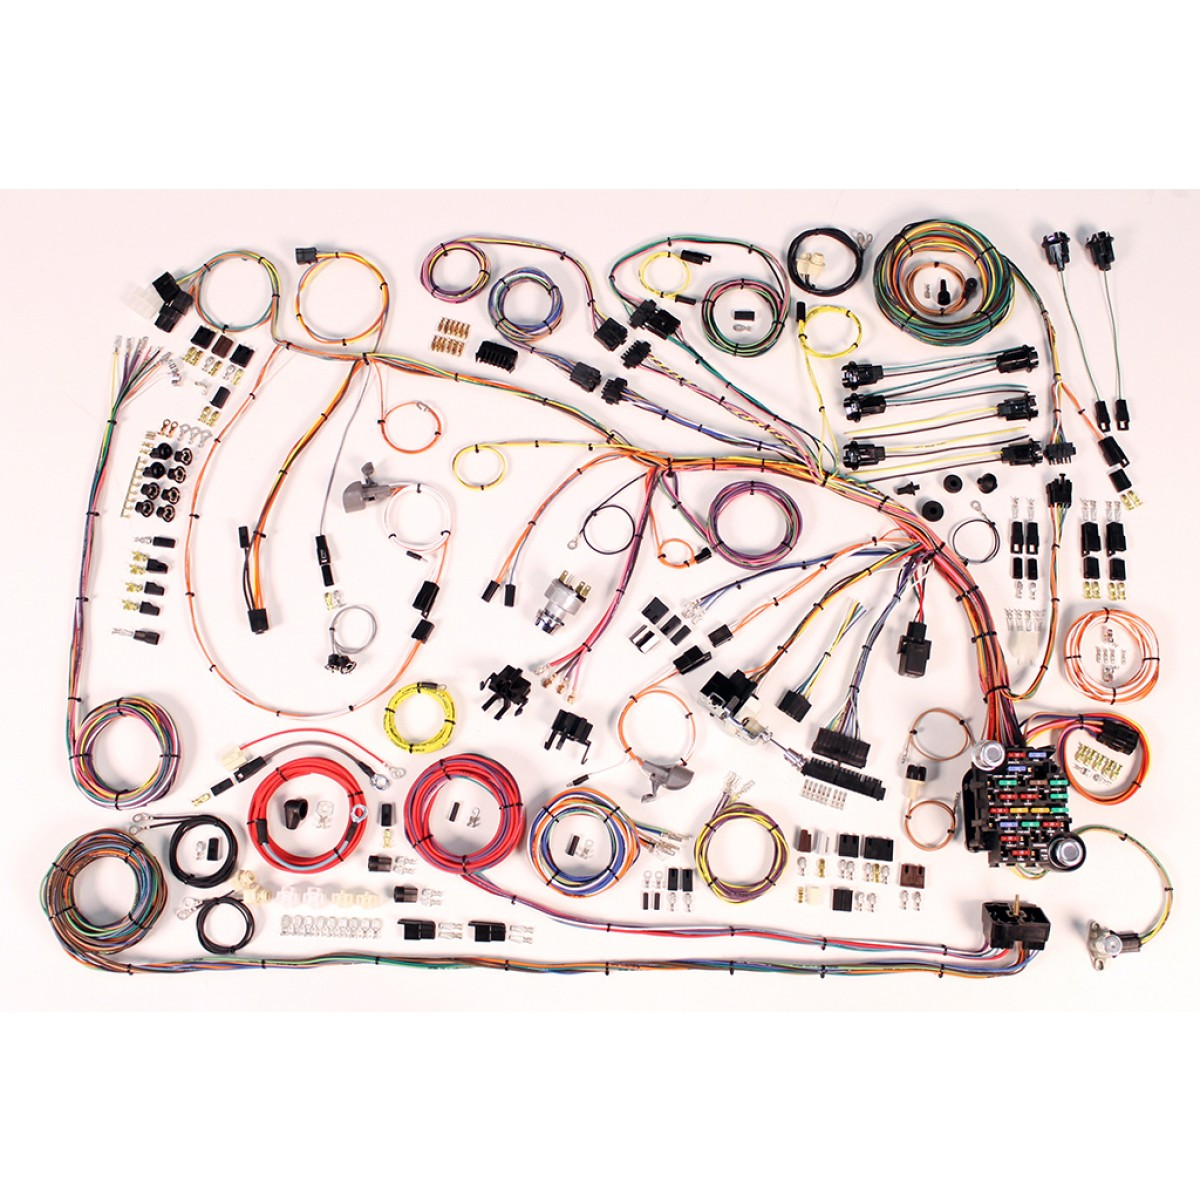 wiring harness kit 1966 1968 impala part 510372 66 68 impala full wire harness 510372 1966 1968 impala wire harness complete wiring harness kit 1966 1967 Impala Dash at gsmx.co